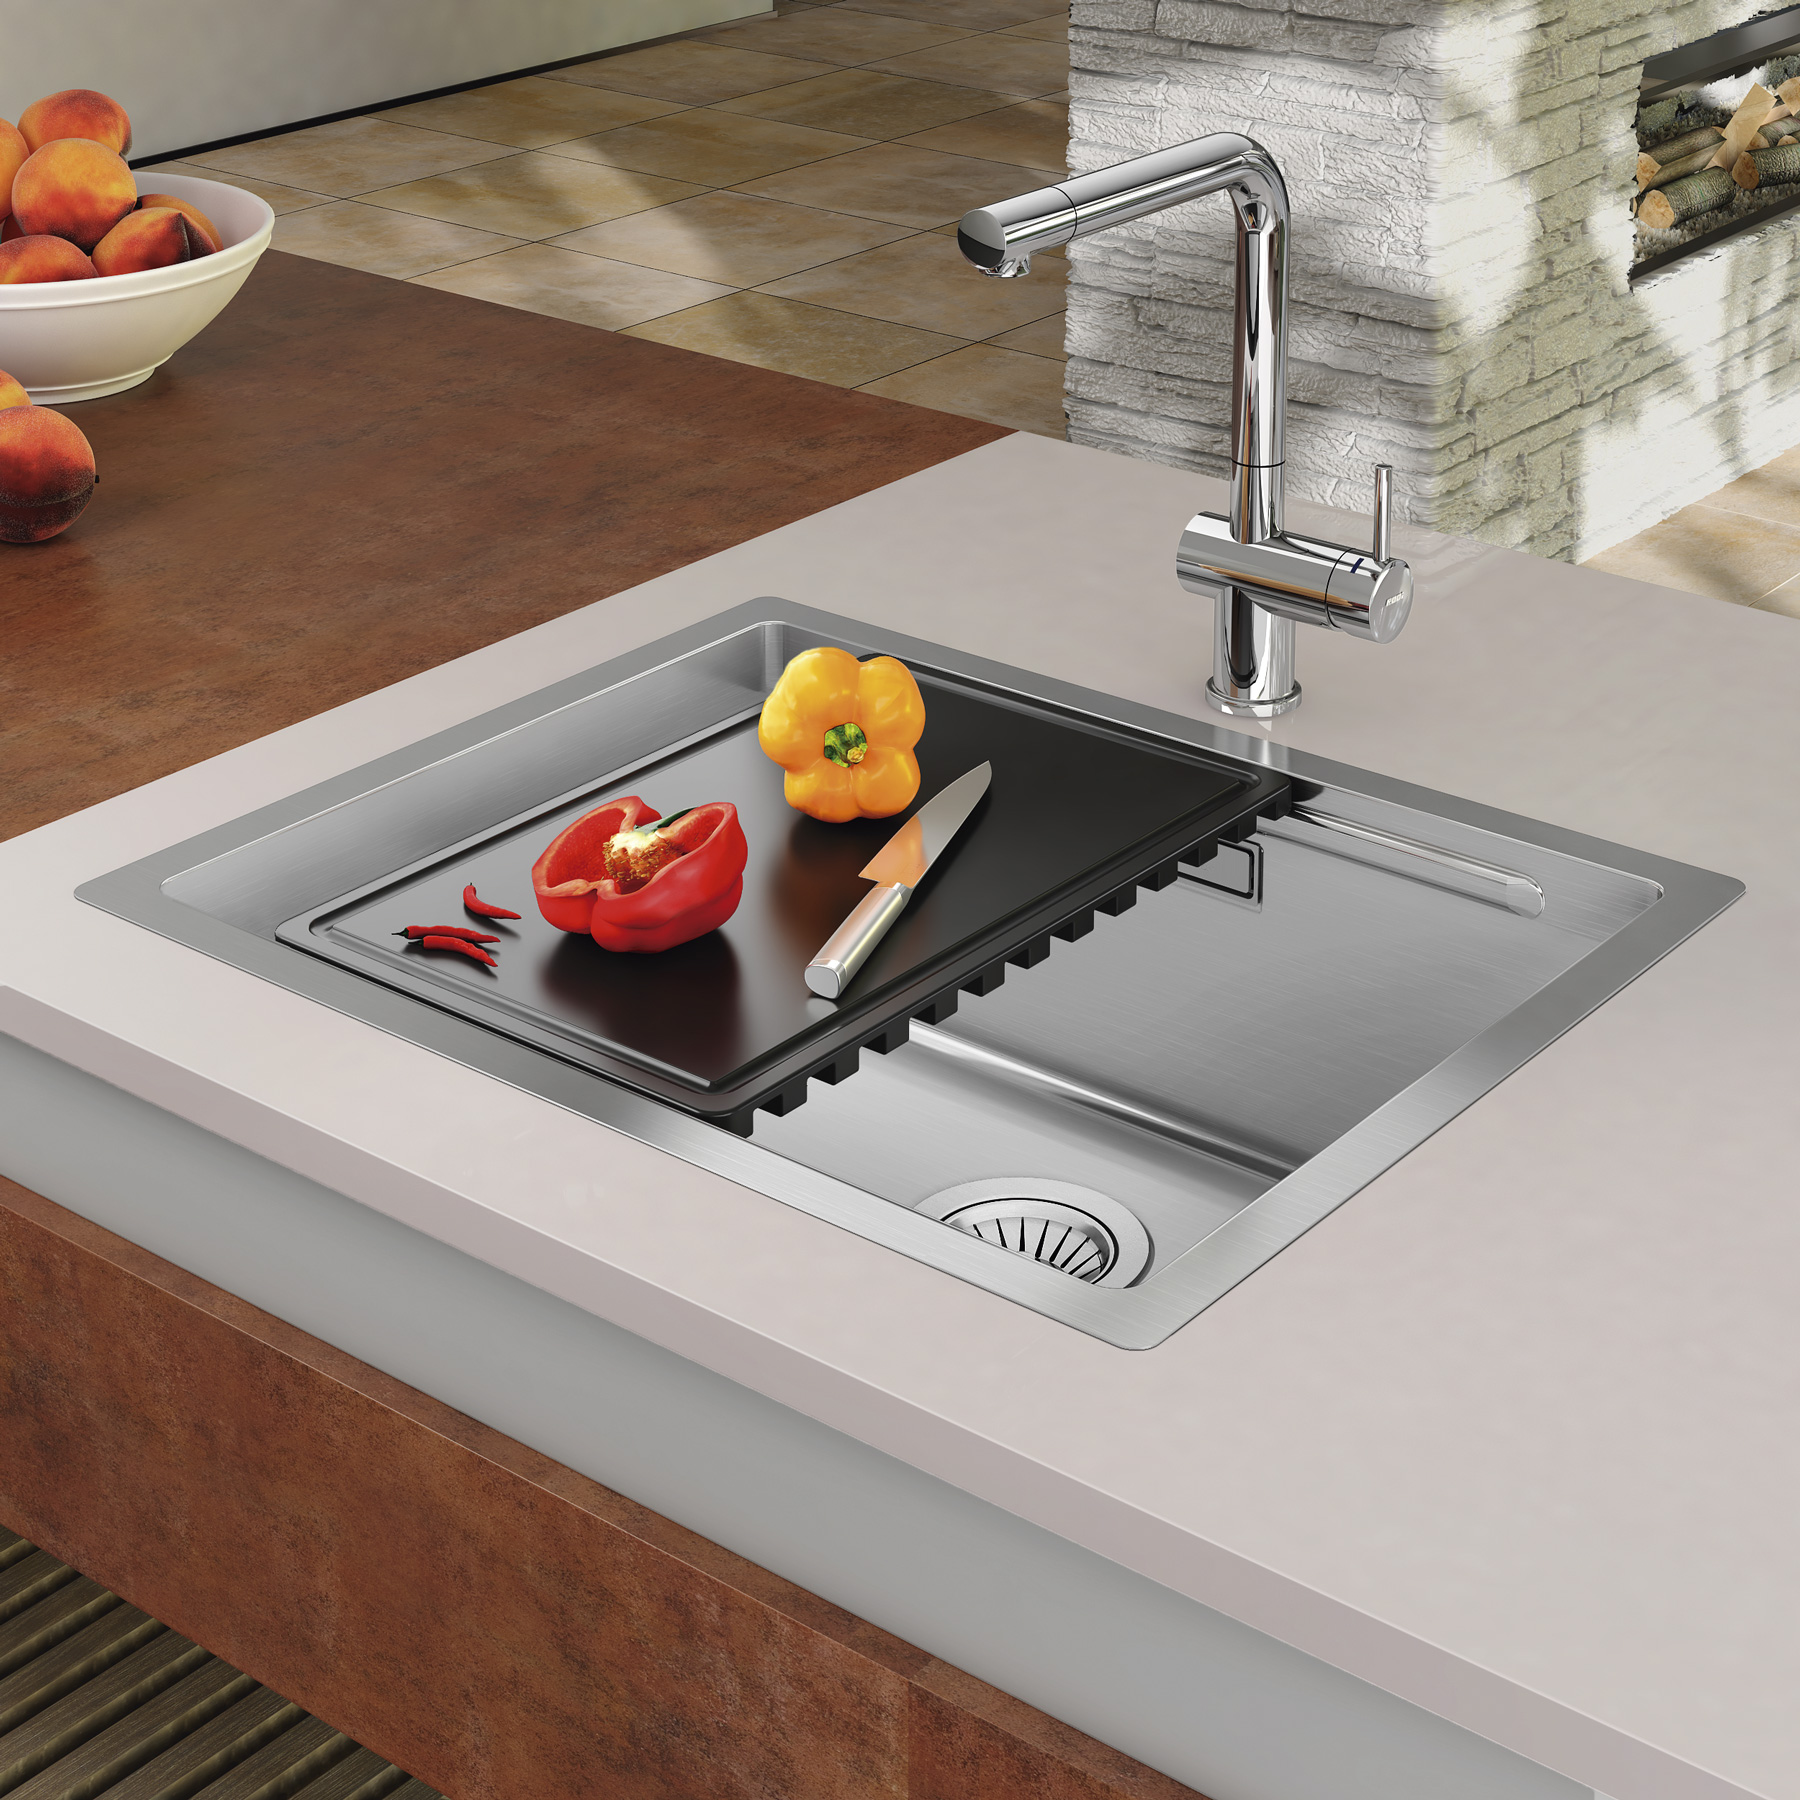 Sinks BOXSTEP 790 RO 1,0mm + VERSUS